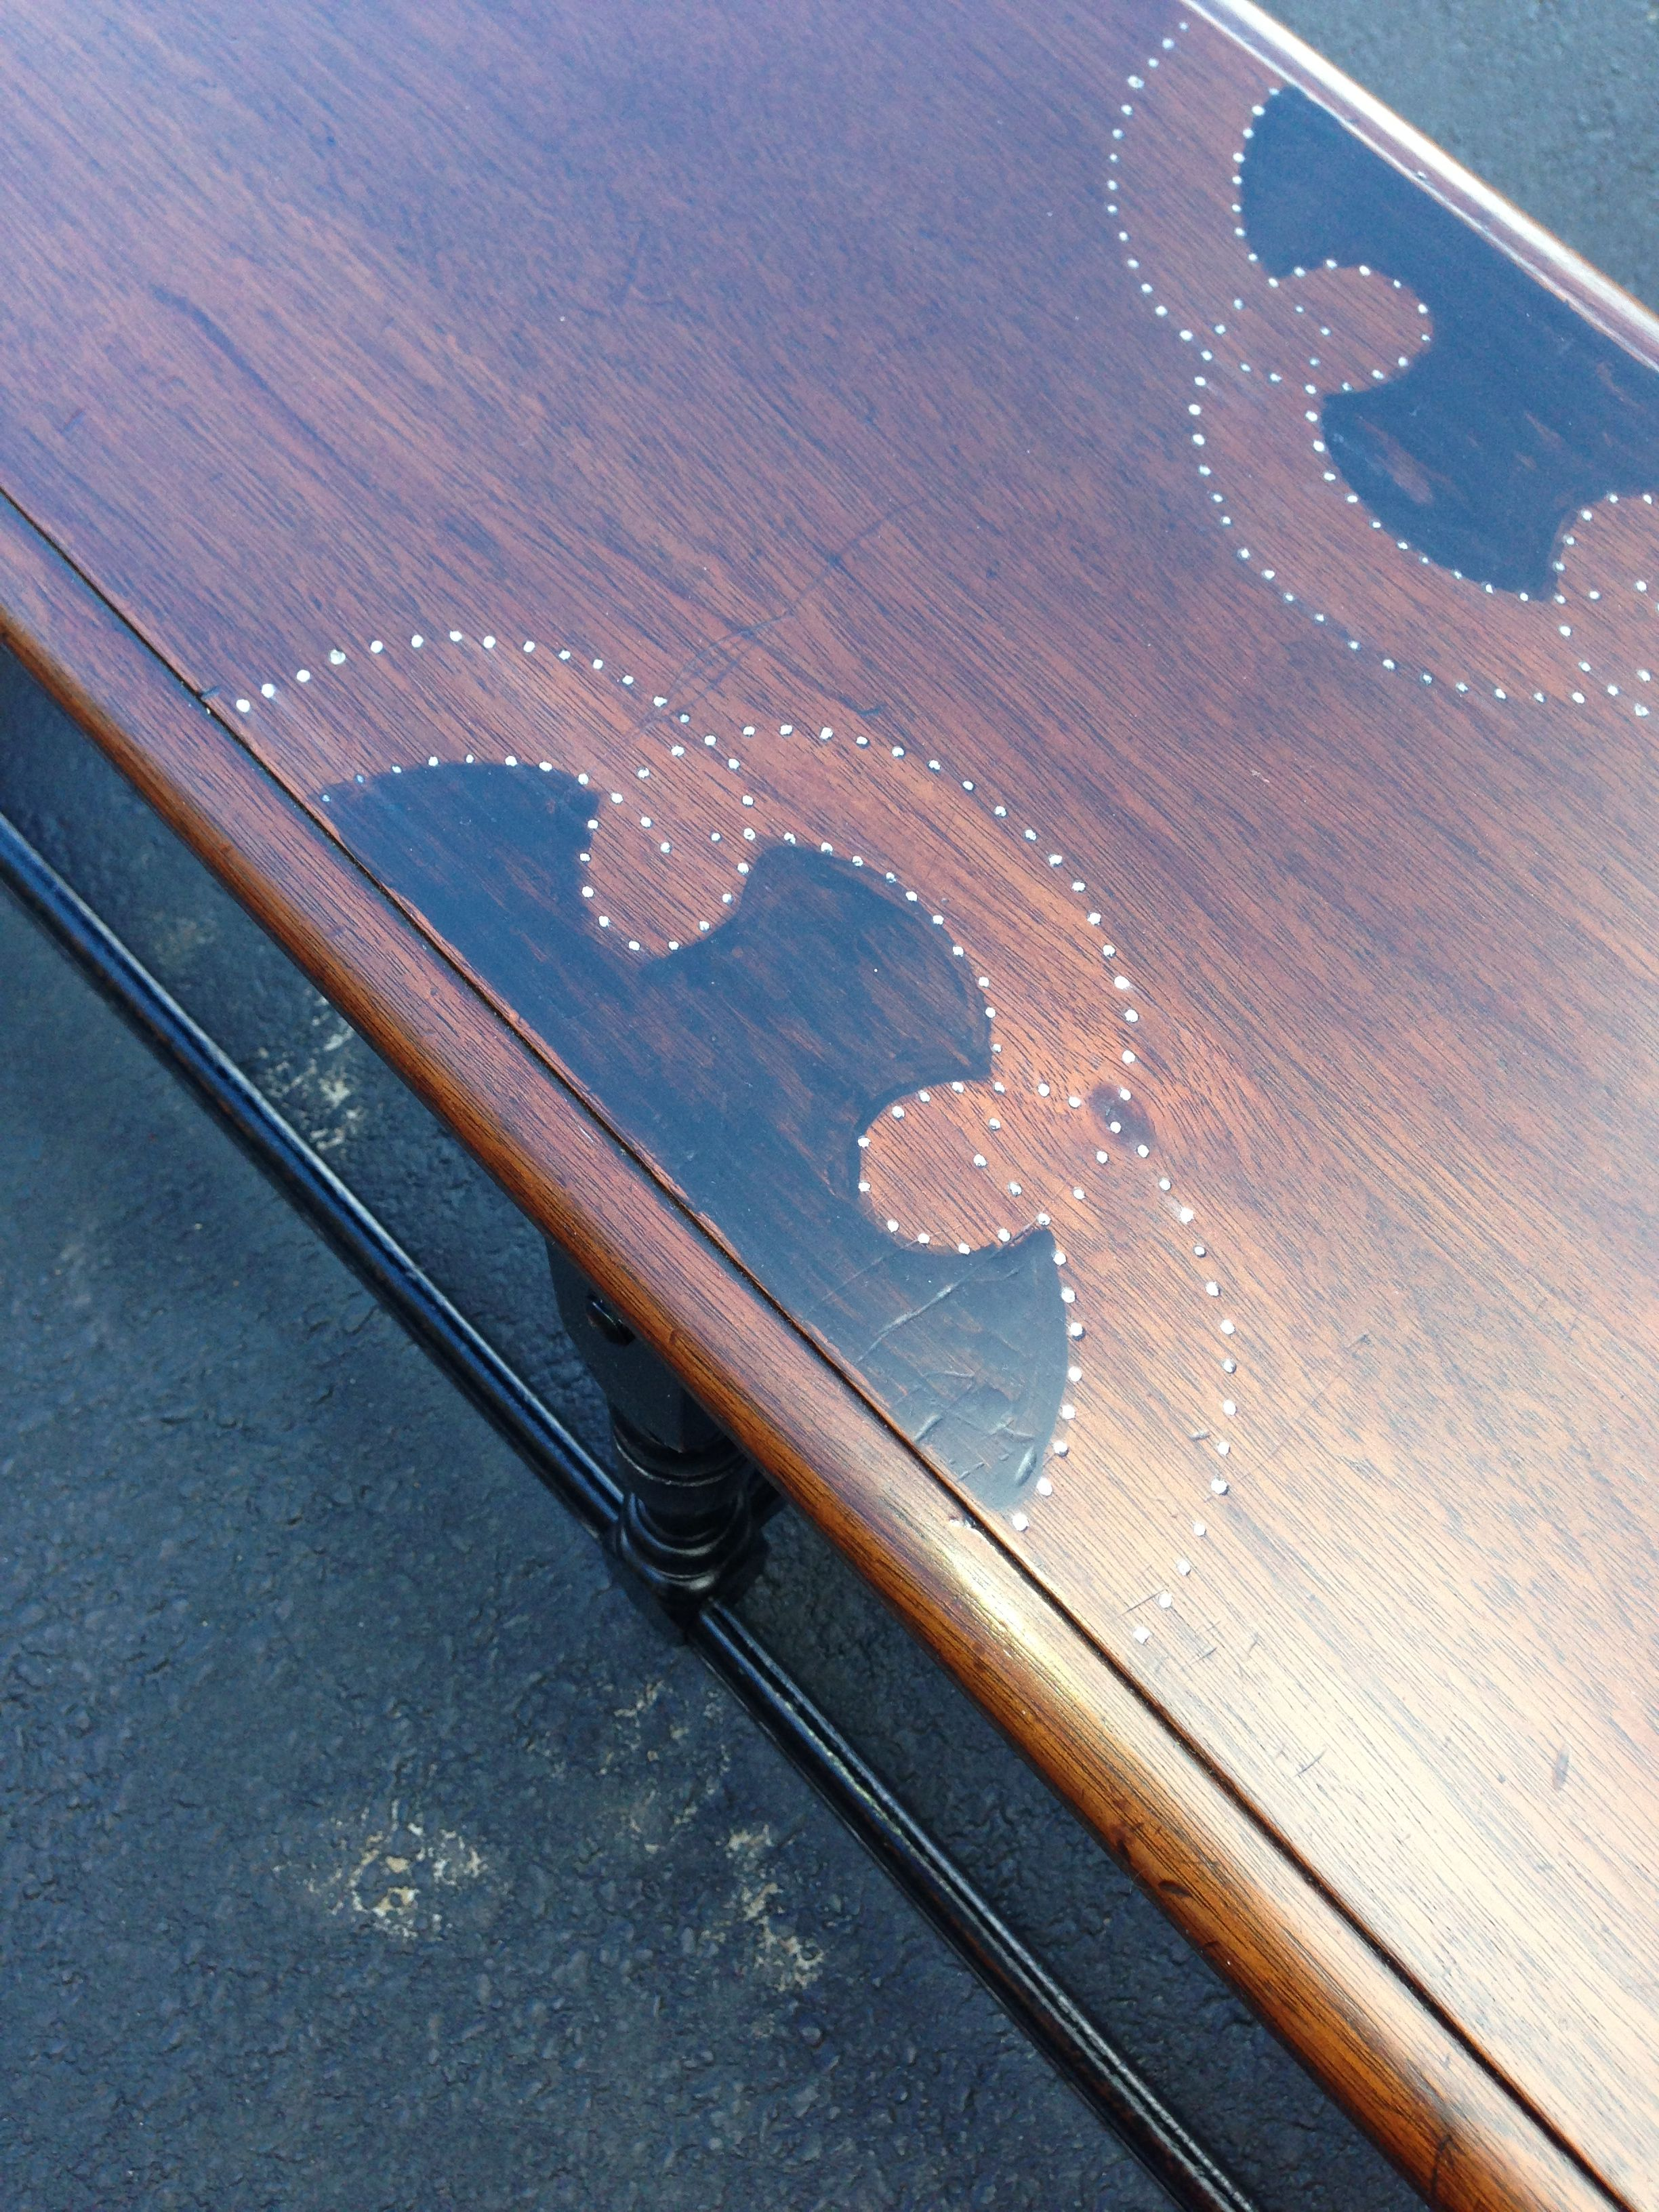 Refinished vintage bench, with three tone stain, distressed black legs, and silver wax accents.  Beautiful piece!